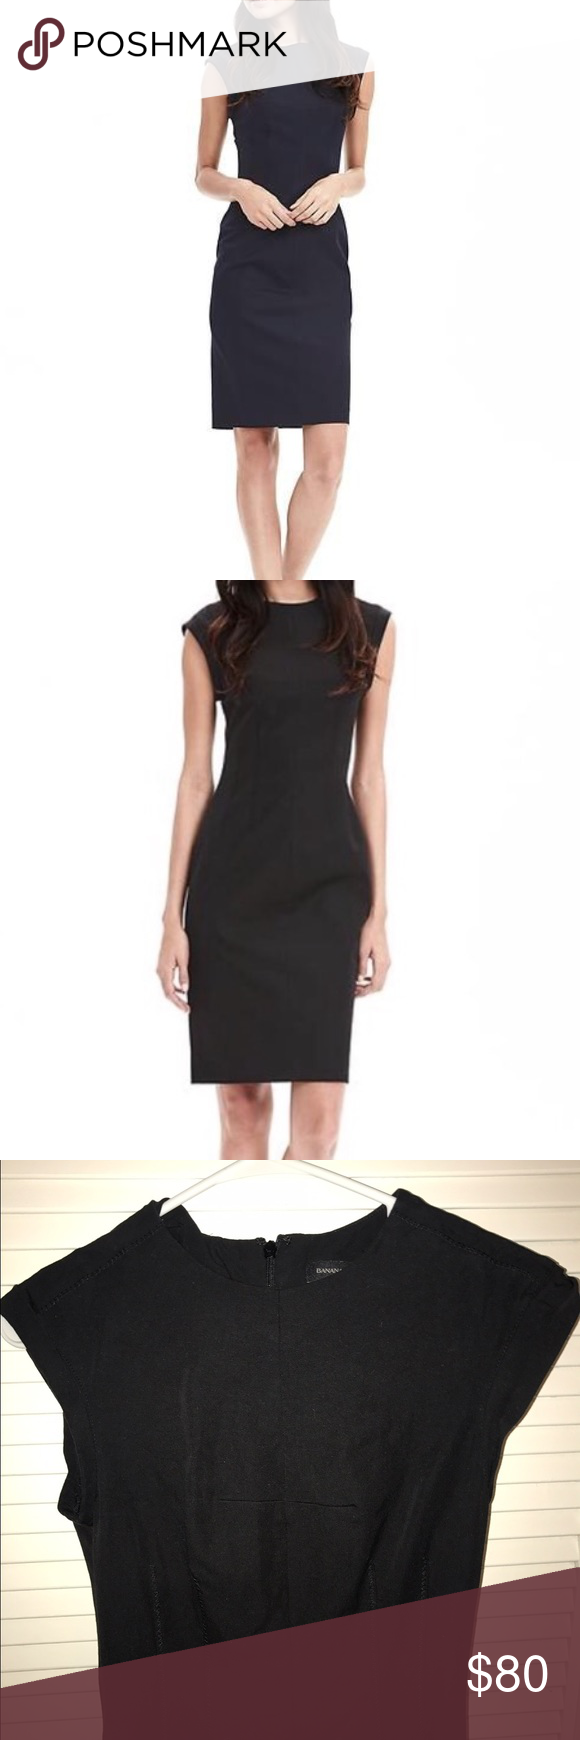 Banana Republic Bi-stretch crew Sheath Dress Black. Crew beck.  Back zip.  Cap sleeve.  Worn a few times but bought this year and I'm great condition. Banana Republic Dresses Midi